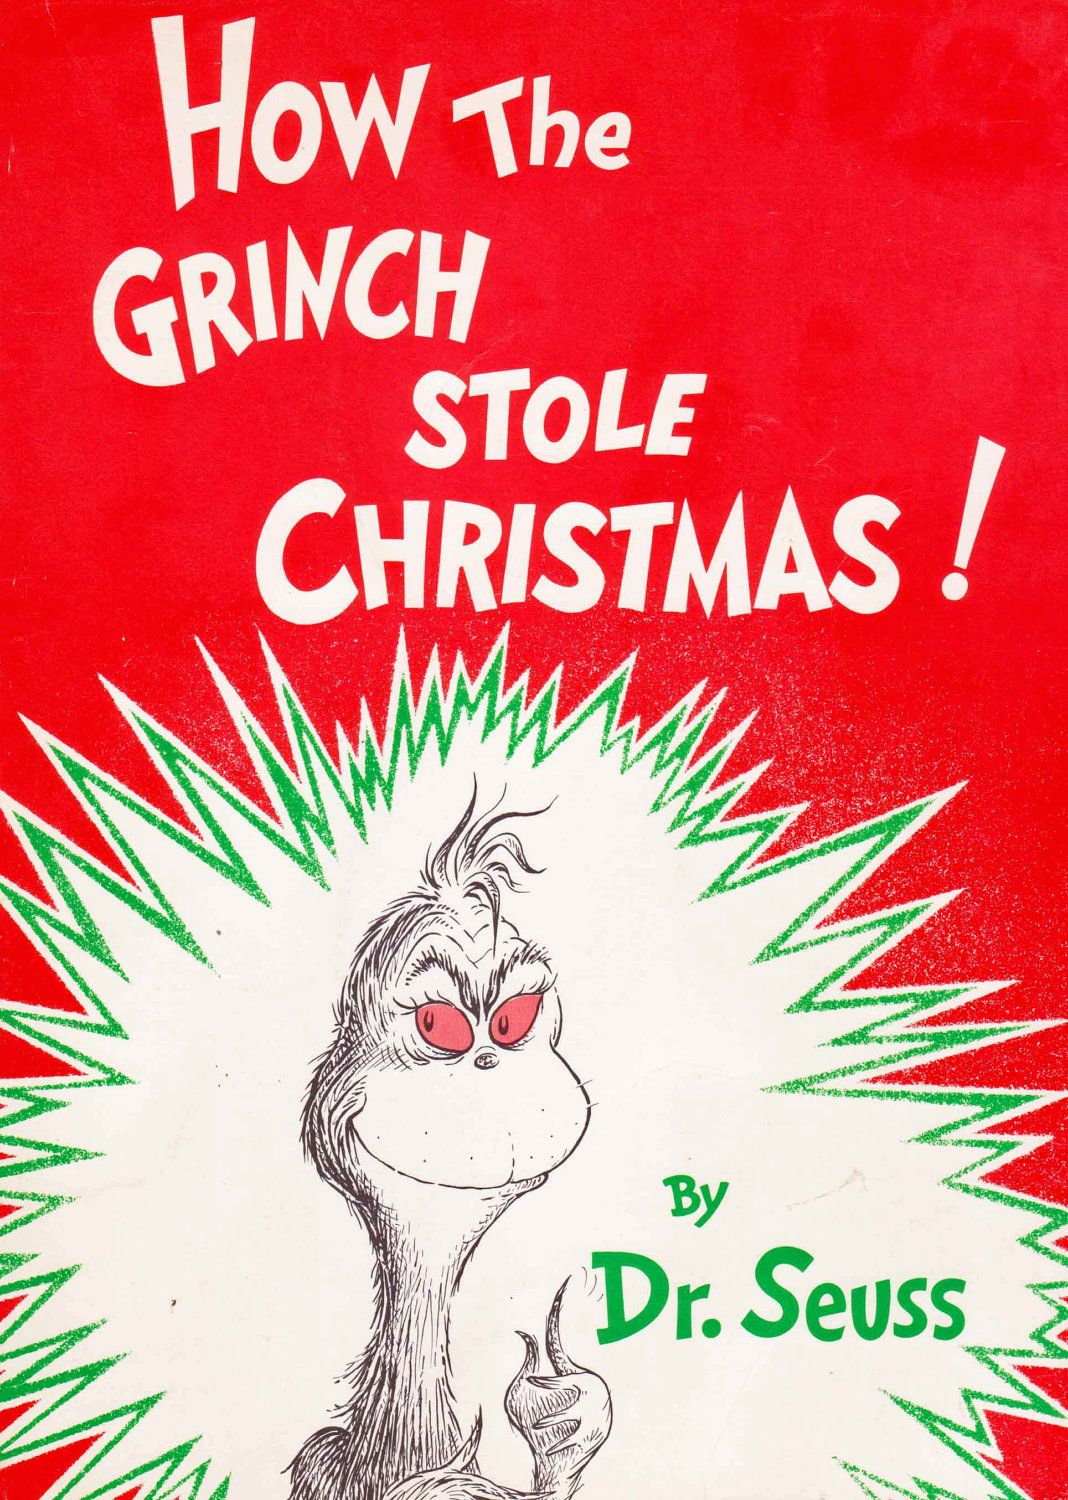 How The Grinch Stole Christmas Best Christmas Books Christmas Books For Kids Grinch Stole Christmas